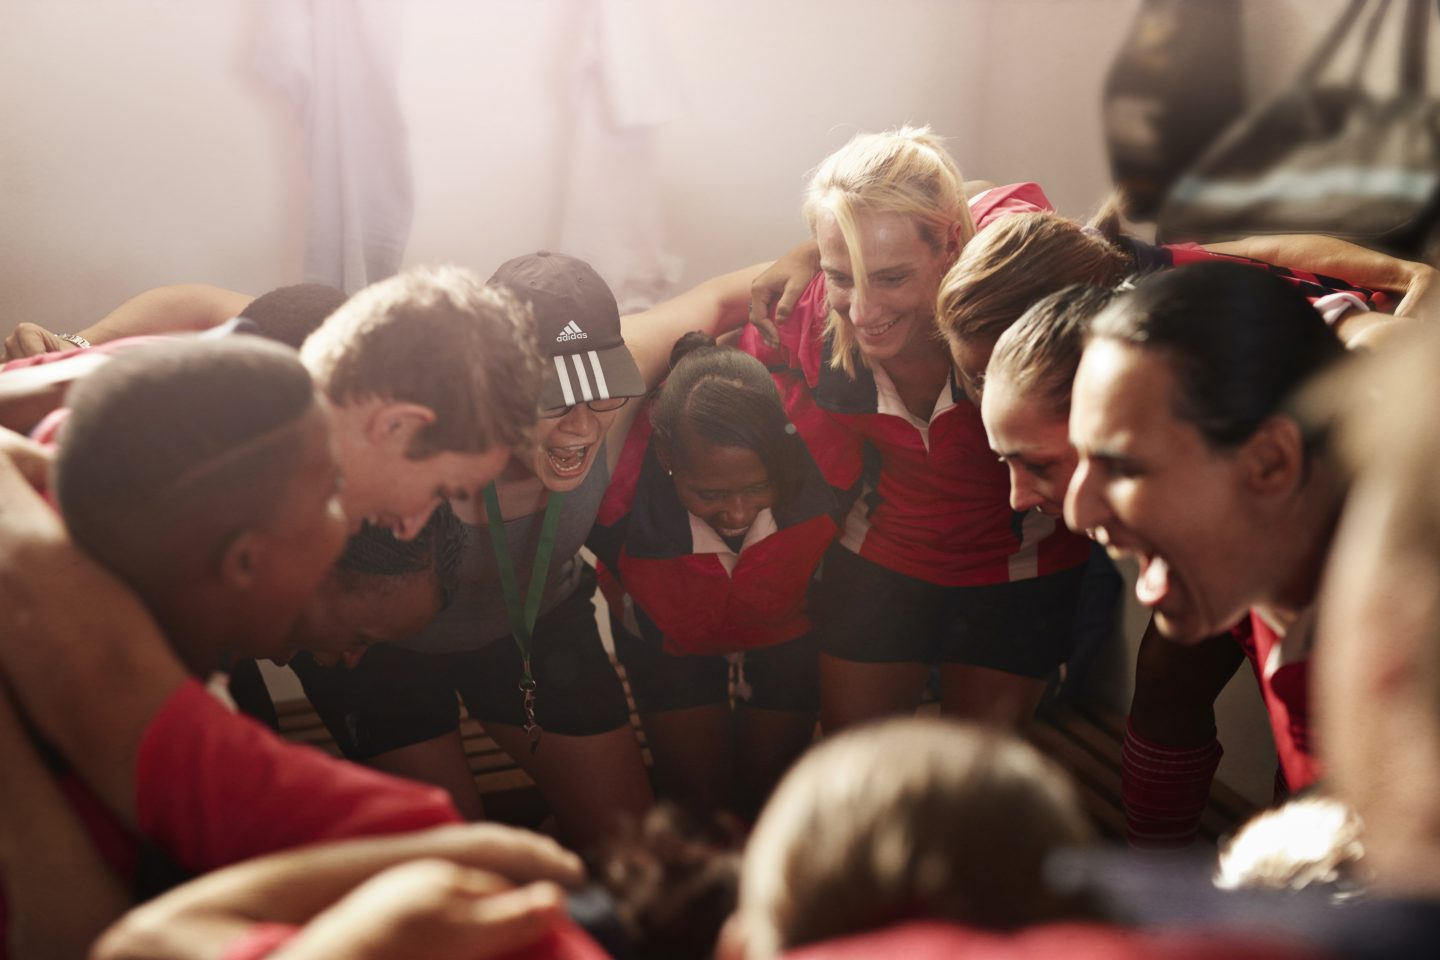 team in a circle pep talk motivate team know what makes them tick